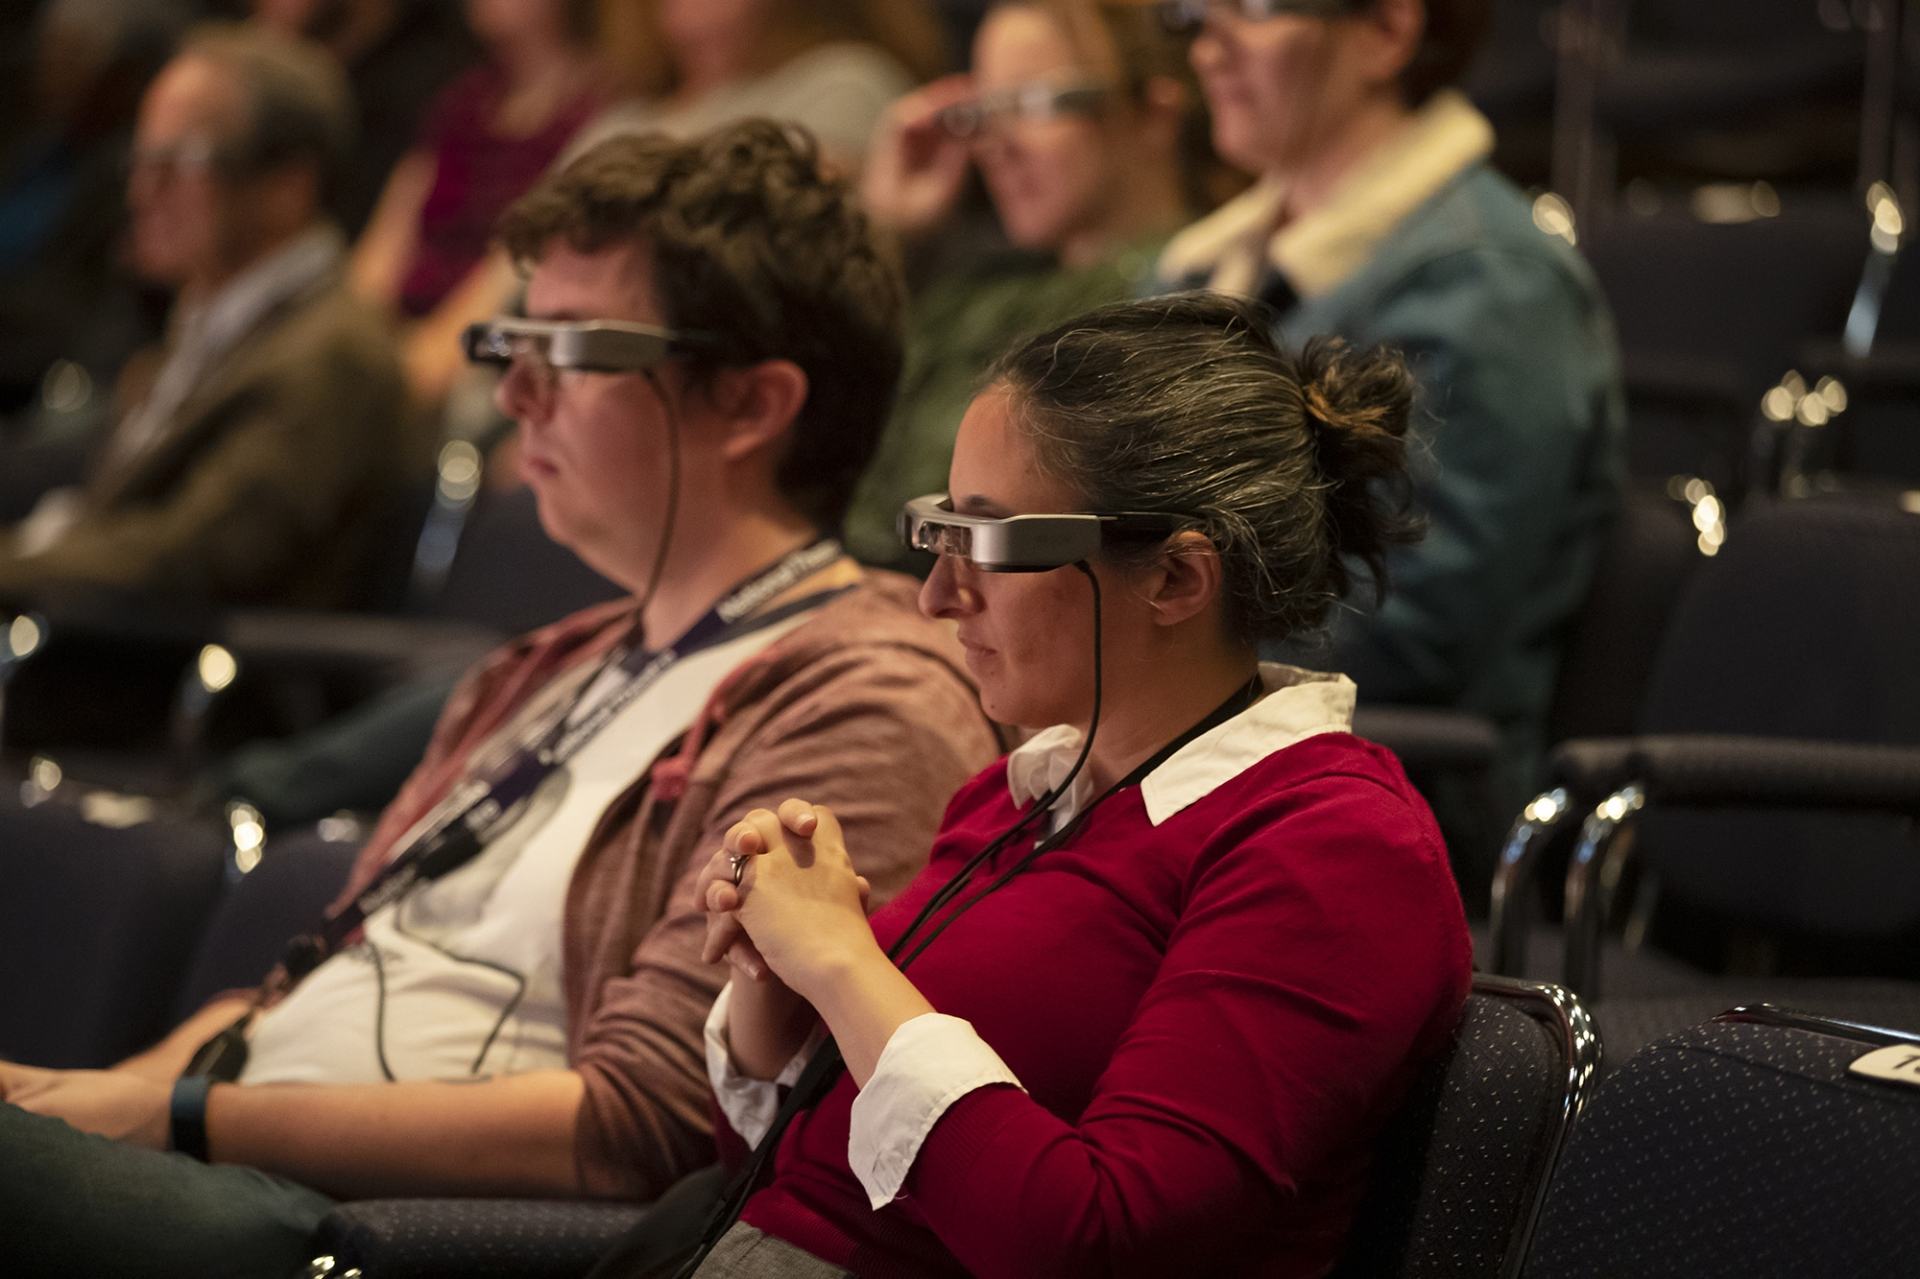 Audience members watching a short scene of the play Dot at The People's Light Theater in Malvern, Pa. wearing new caption glasses the theater will provide to patrons with hearing difficulty.